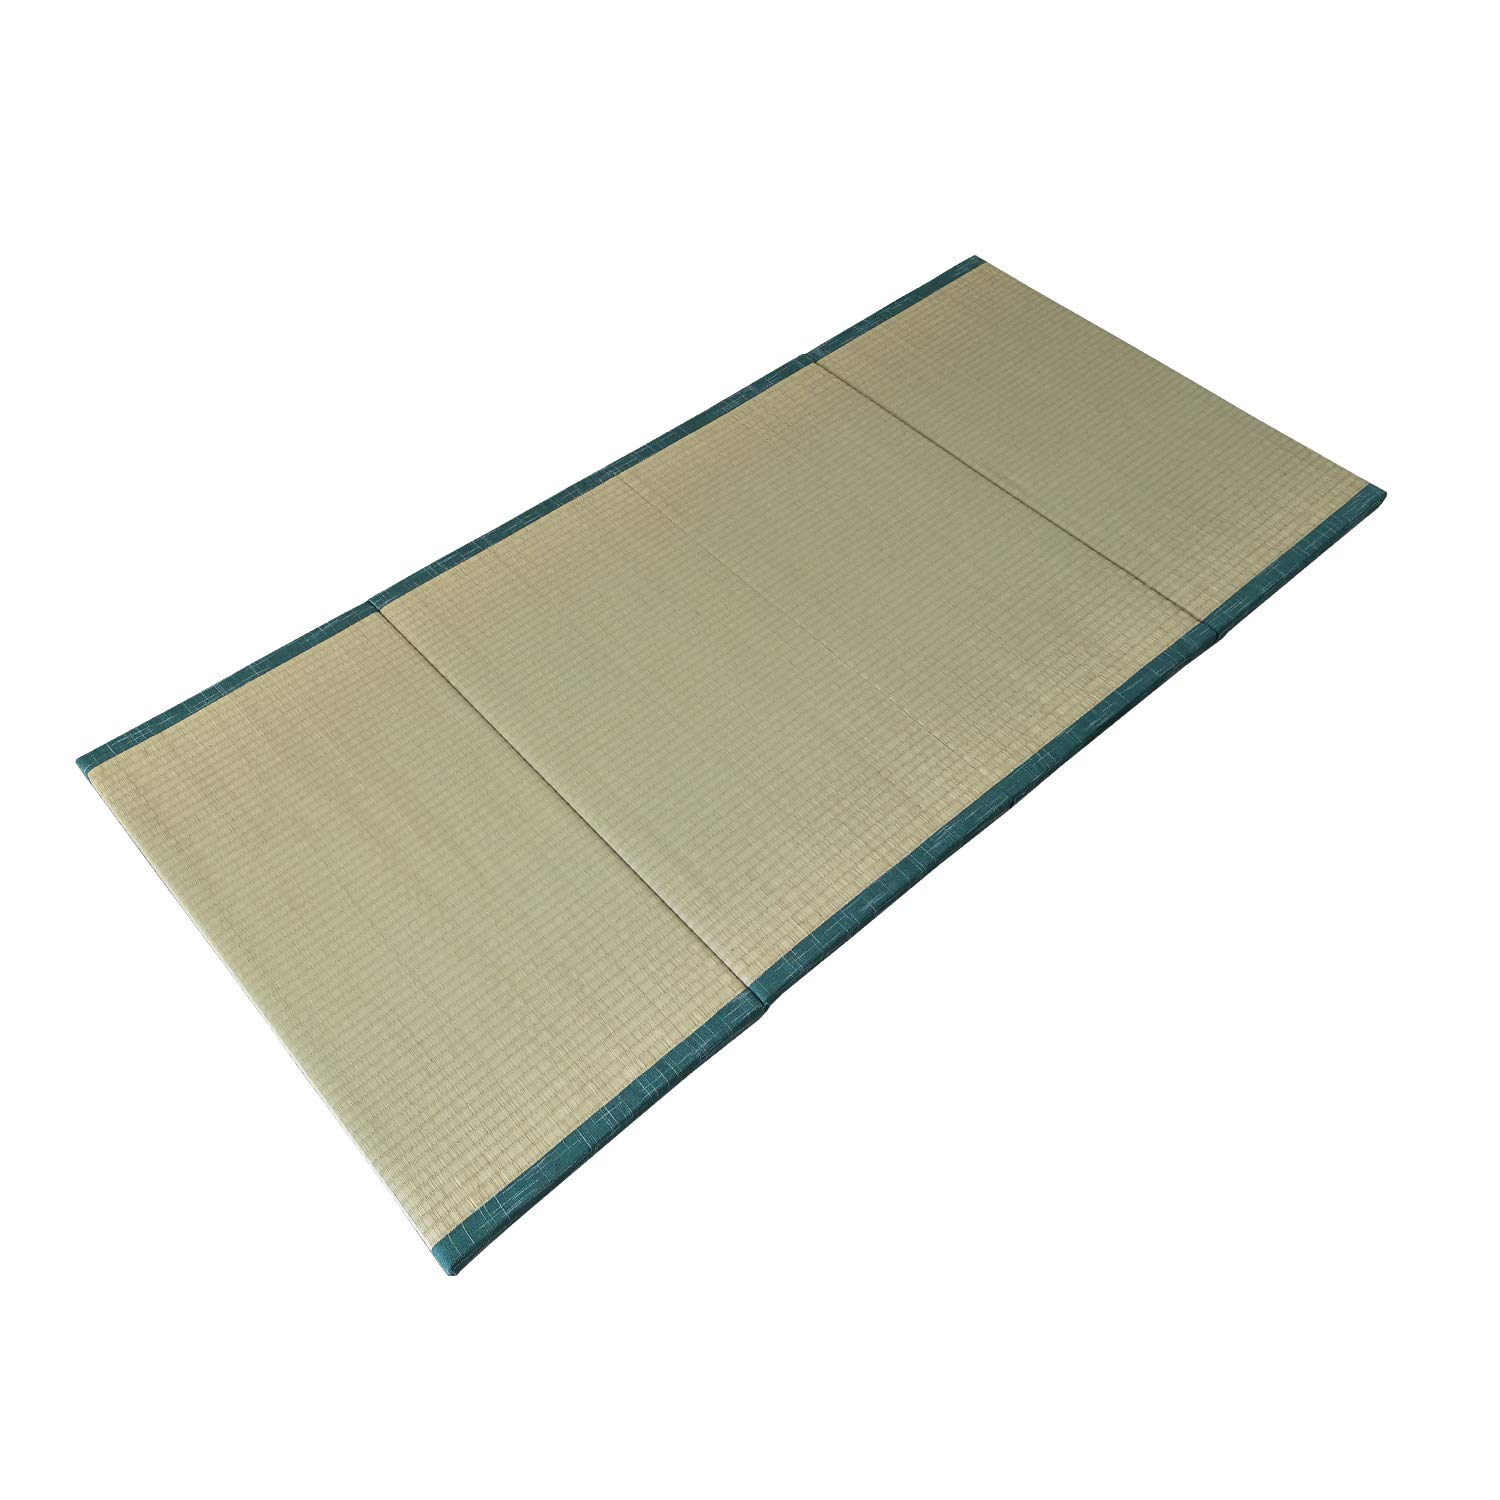 MustMat Tatami Mat Japanese Traditional Igusa Rush Grass Tatami Mattress Folds Easily 35.4''x78.7''x1.2'' by MustMat